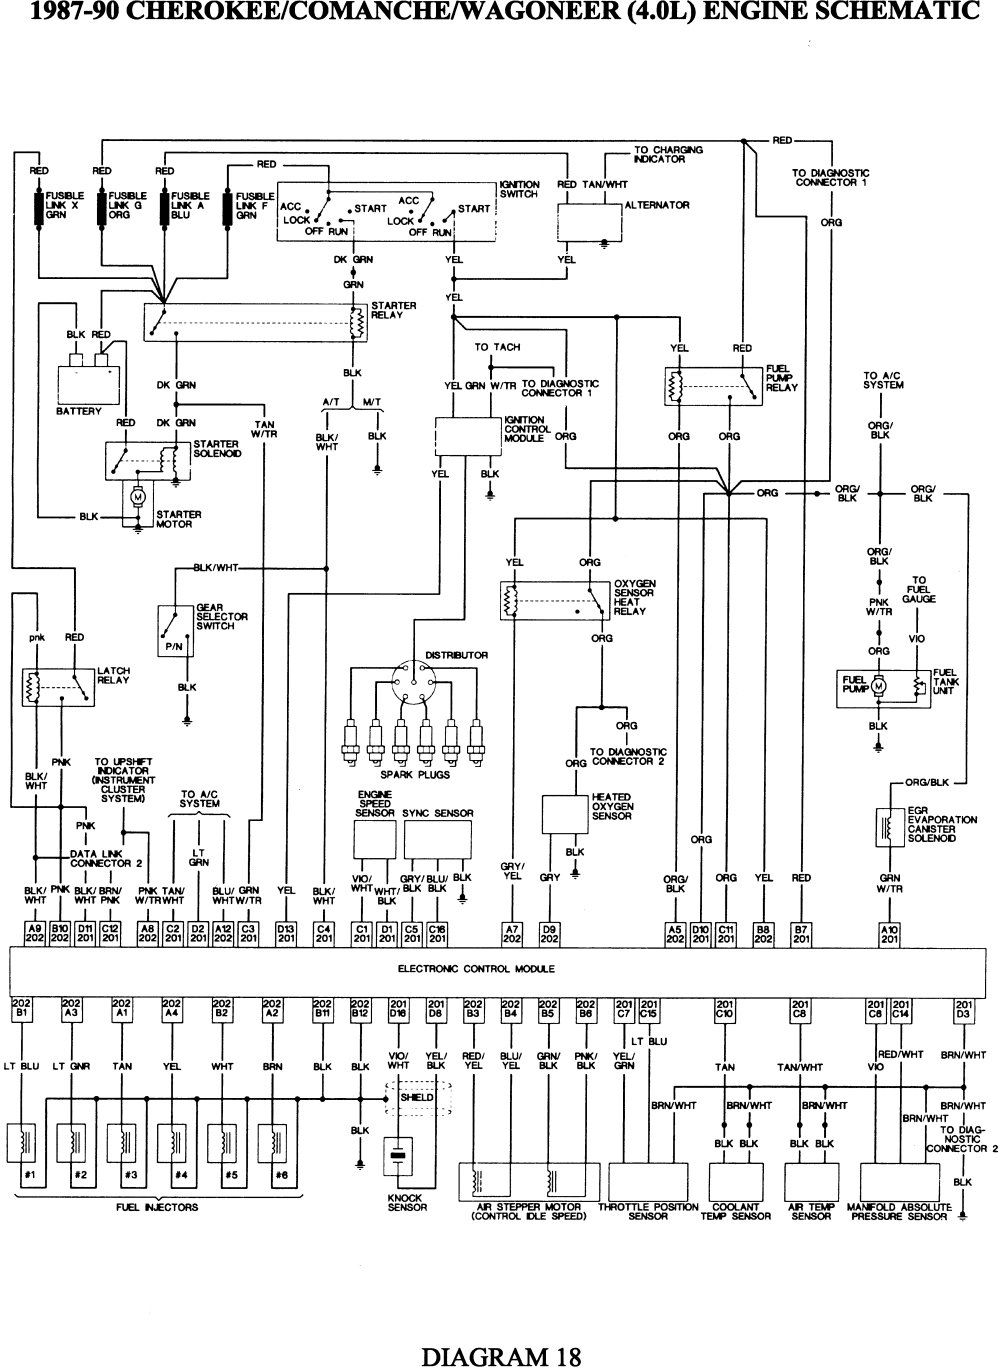 jeep transmission wiring diagram in 97 wrangler wiring diagram with 1990 jeep wrangler wiring diagram [ 1000 x 1369 Pixel ]